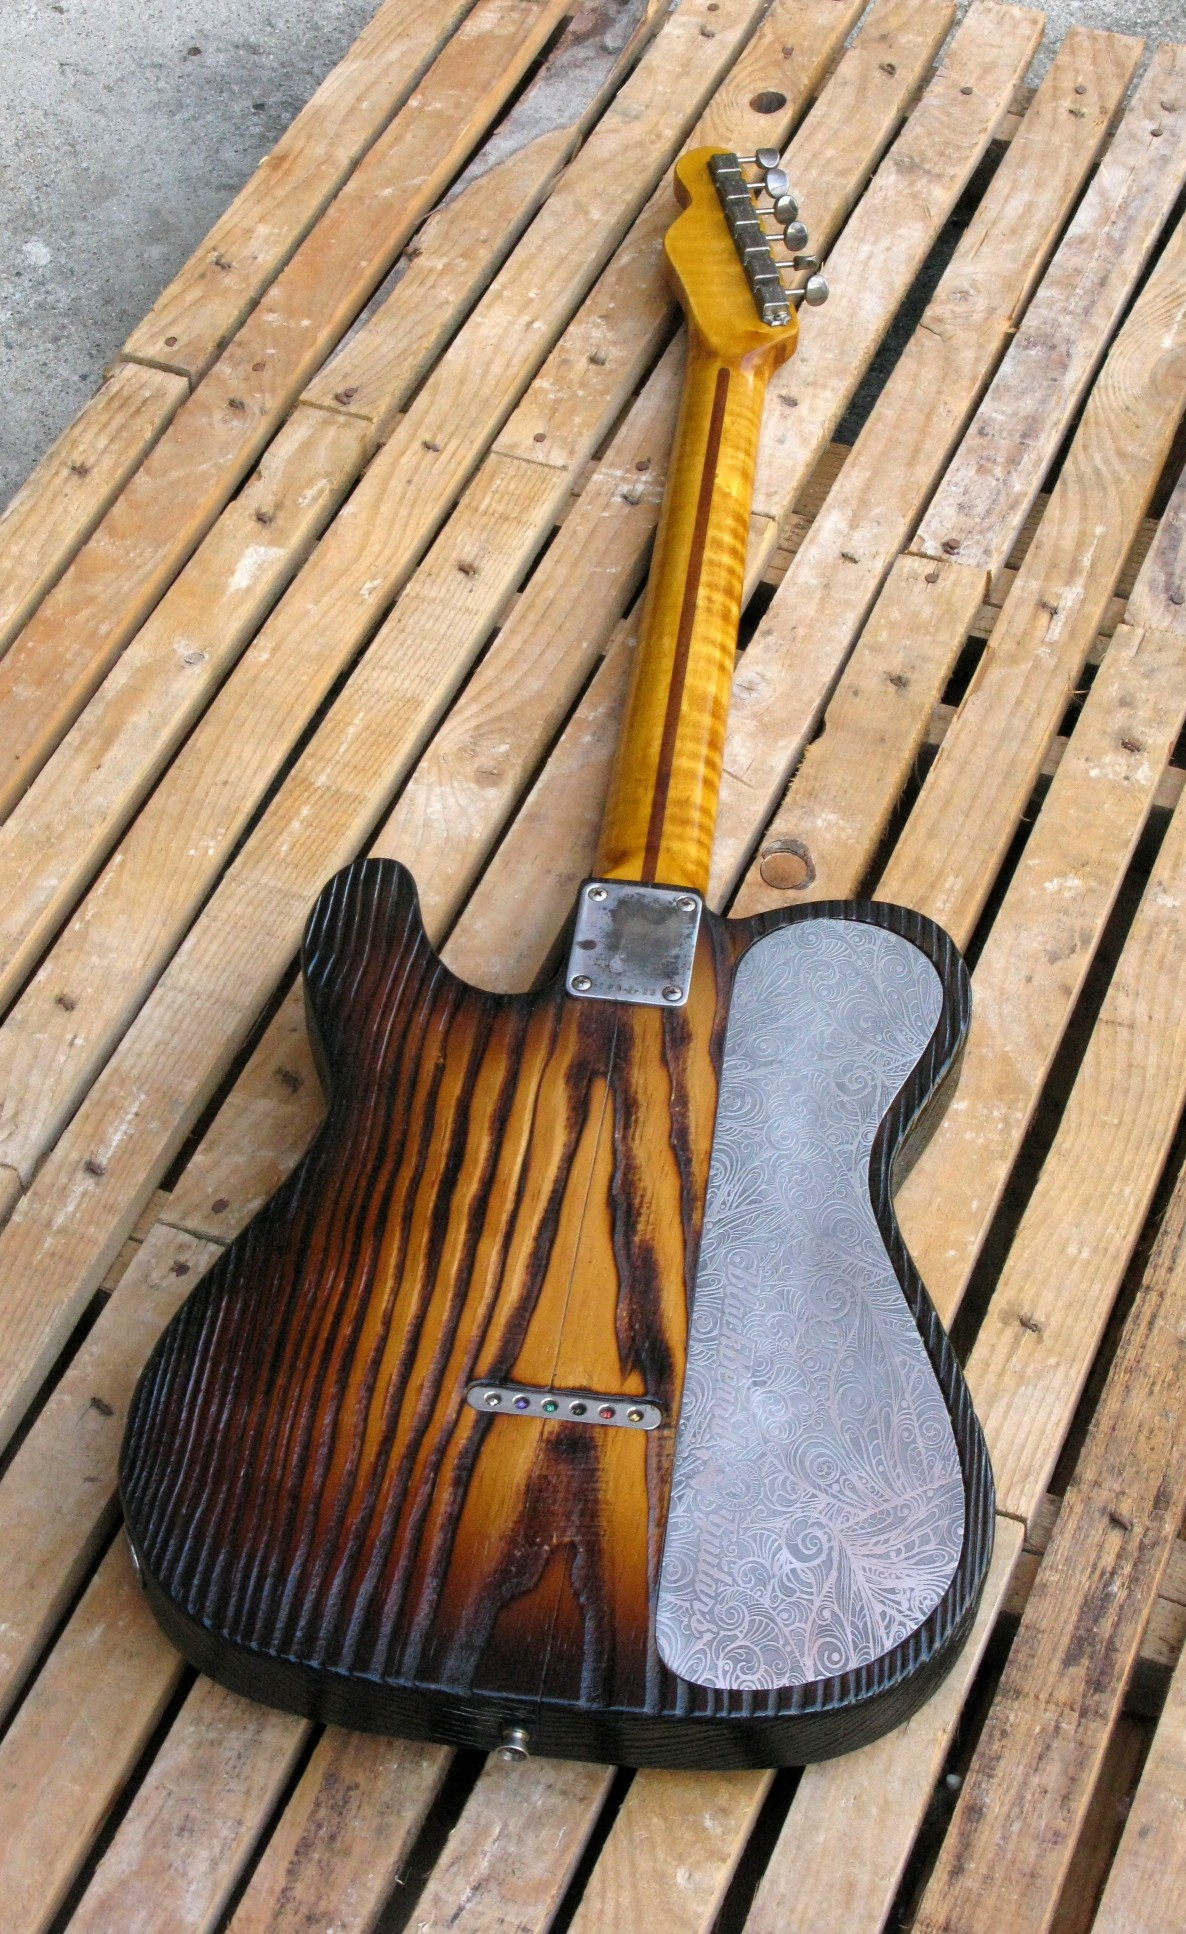 Retro di una chitarra Telecaster Thinline in yellow pine roasted